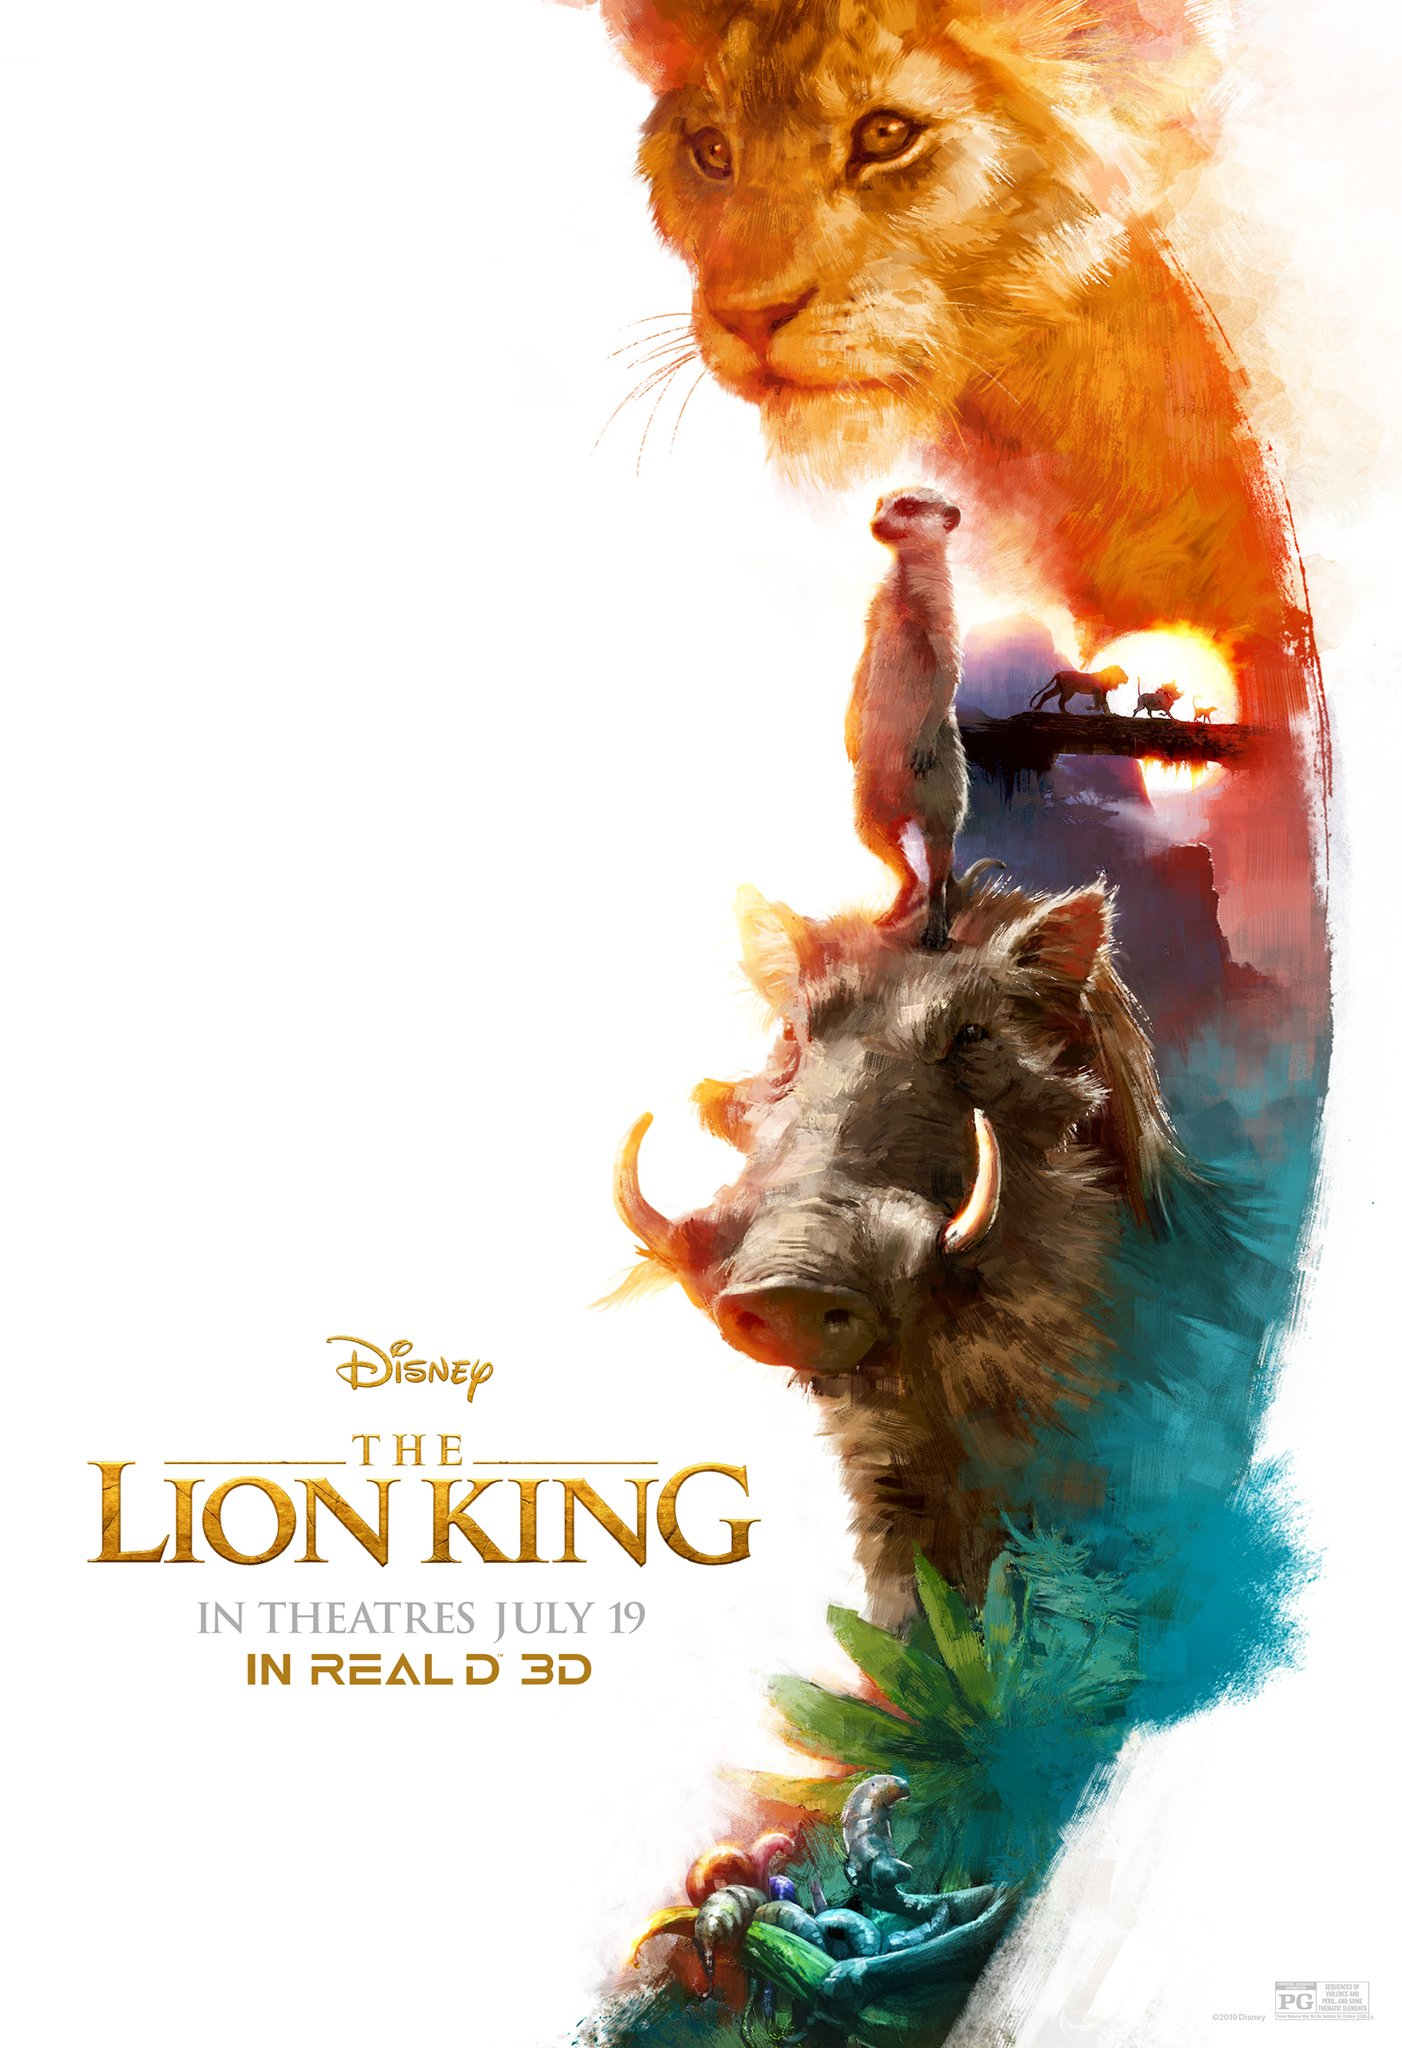 The Lion King RealD 3D Poster